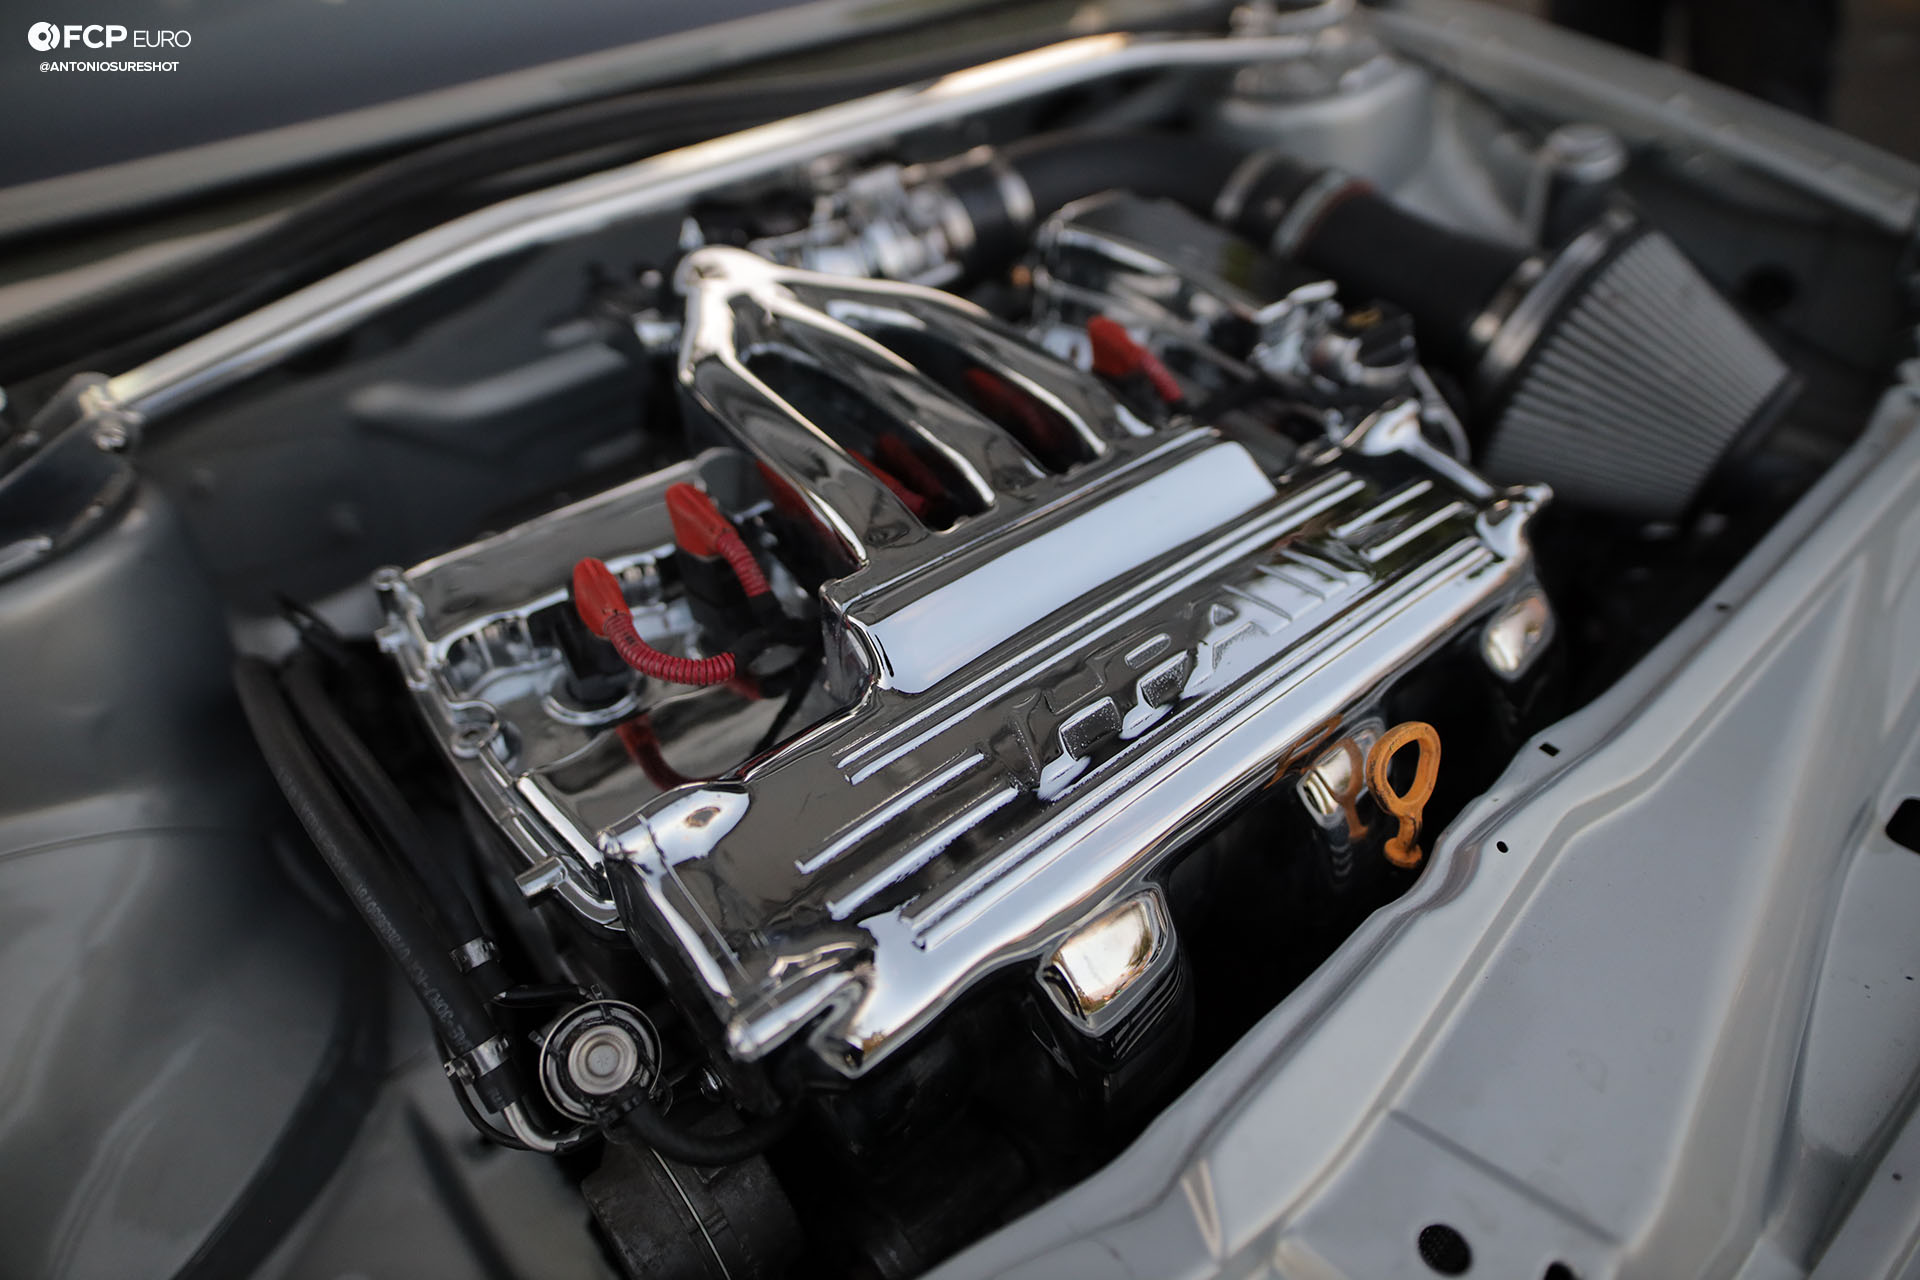 VW Corrado R32 VR6 Engine Bay